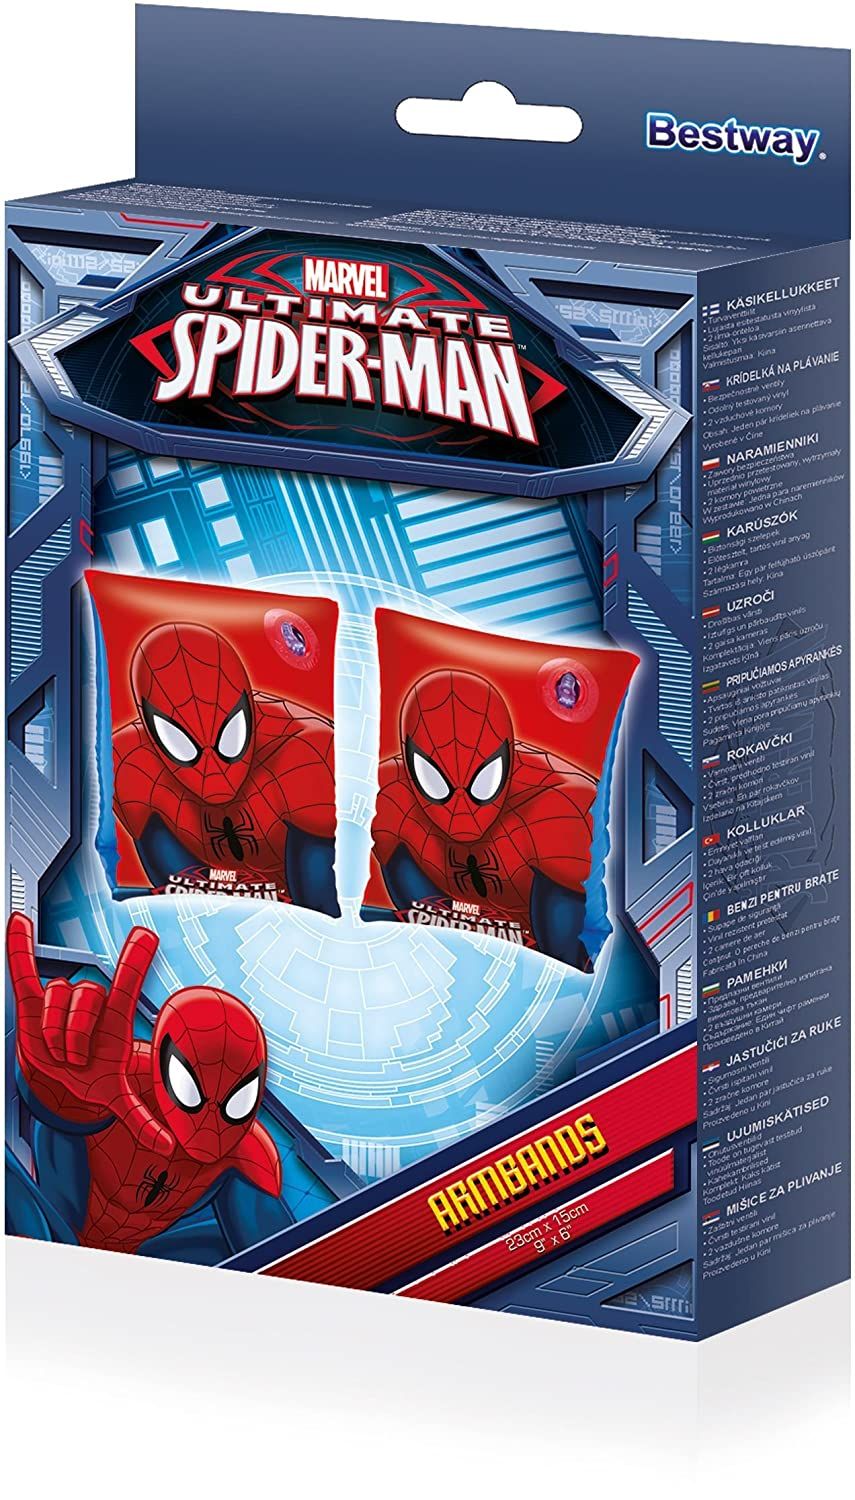 Manguitos de spiderman por sólo 6,30€